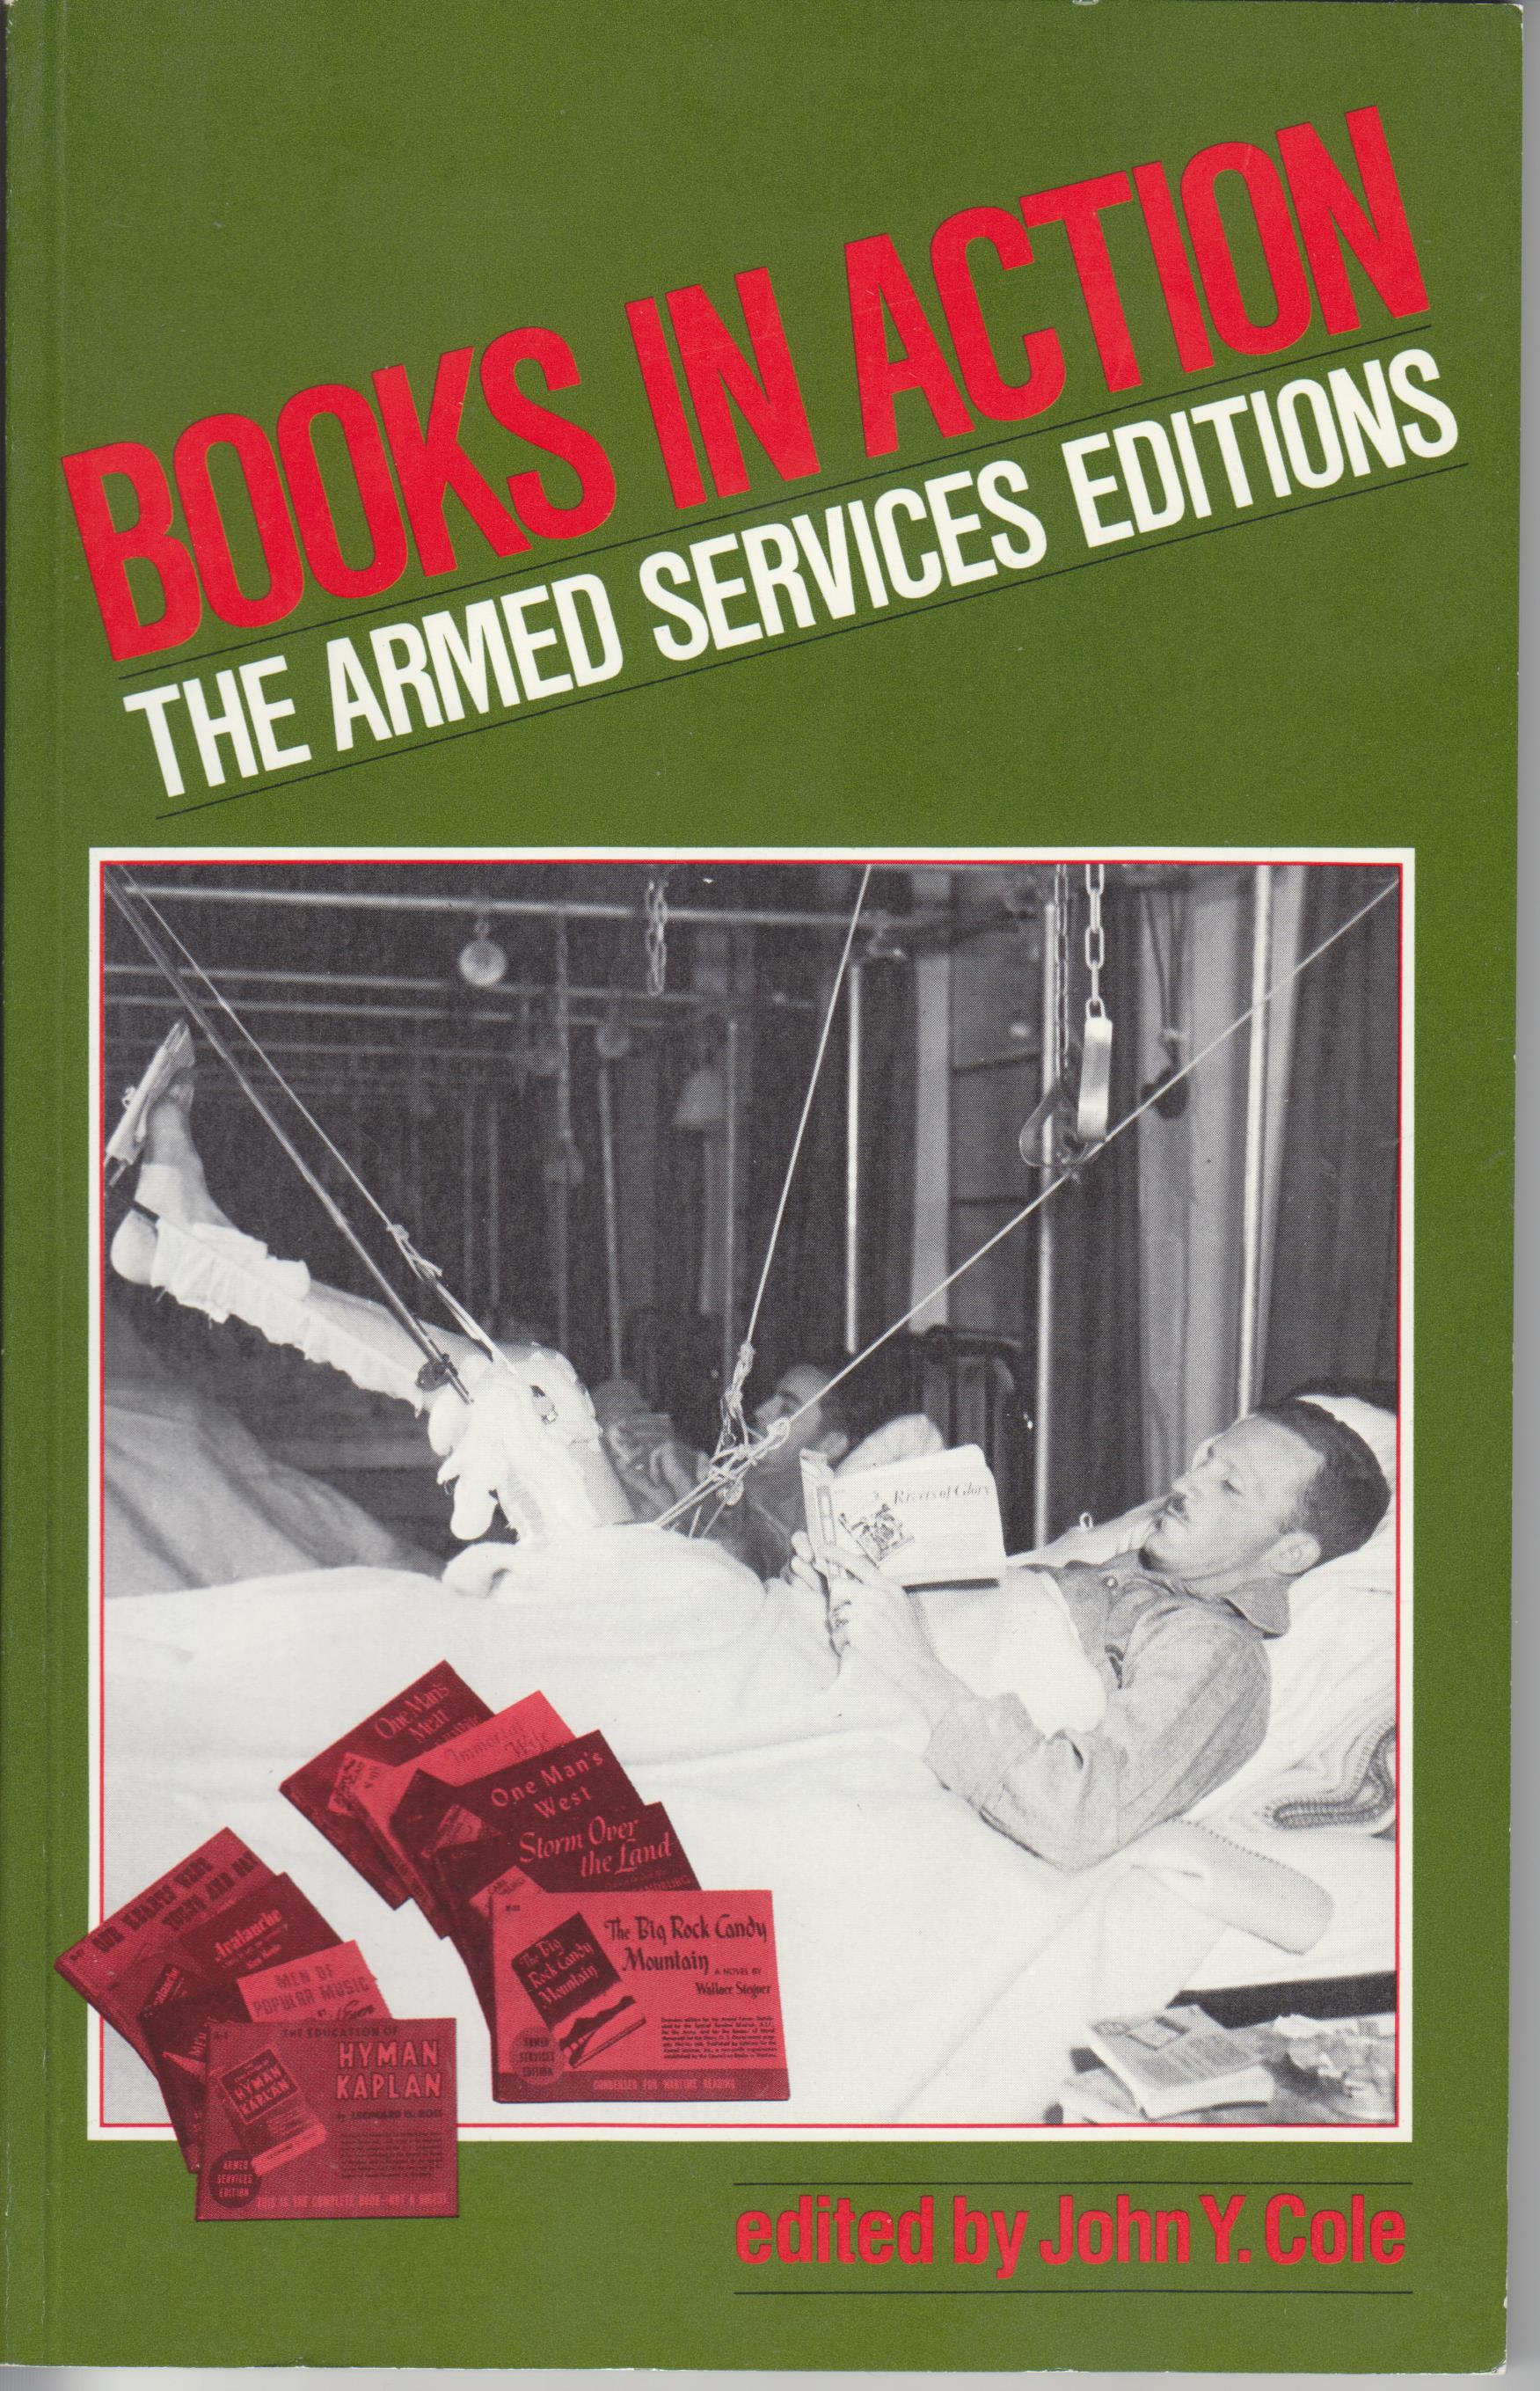 Image for Books in Action. The Armed Services Editions